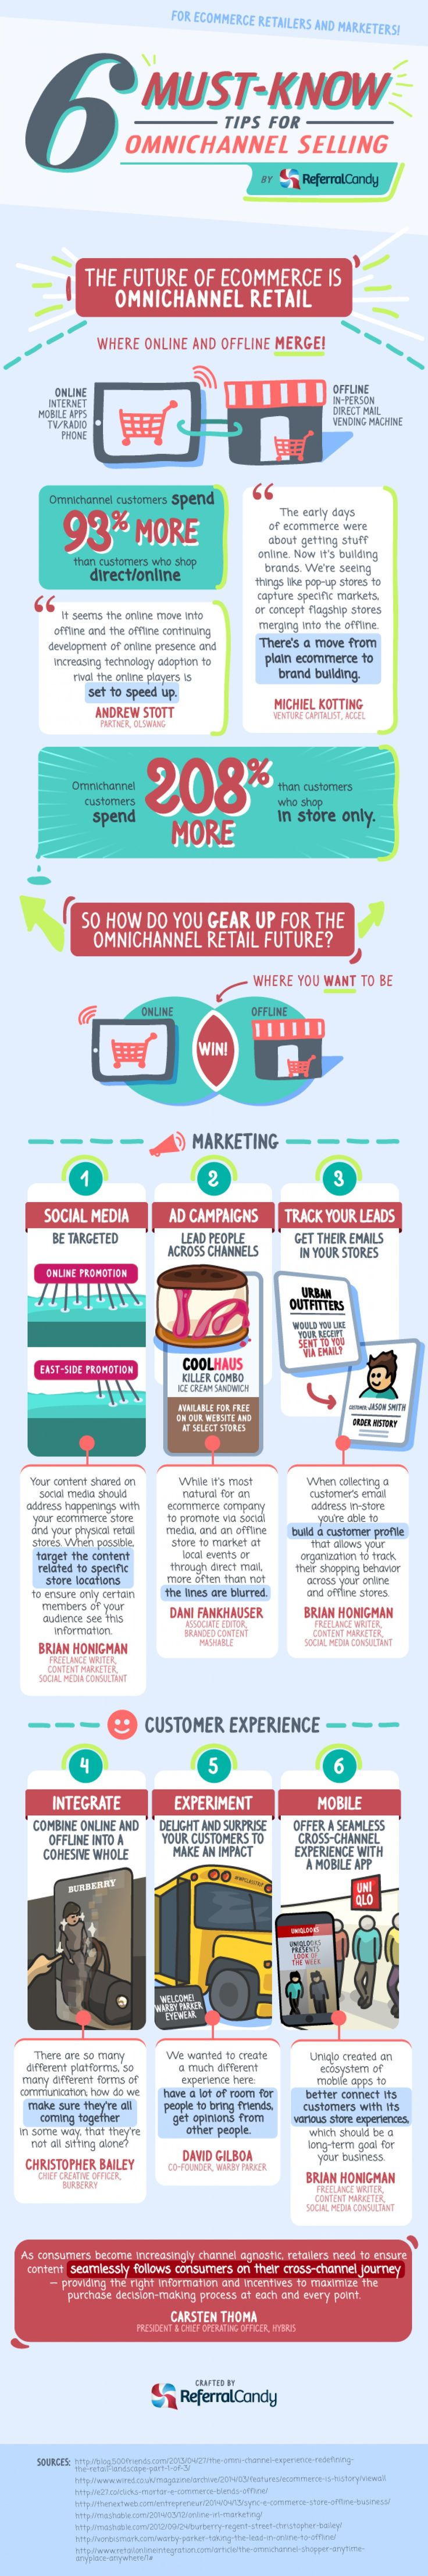 6 Must-Know Tips for Omnichannel Selling #infografía